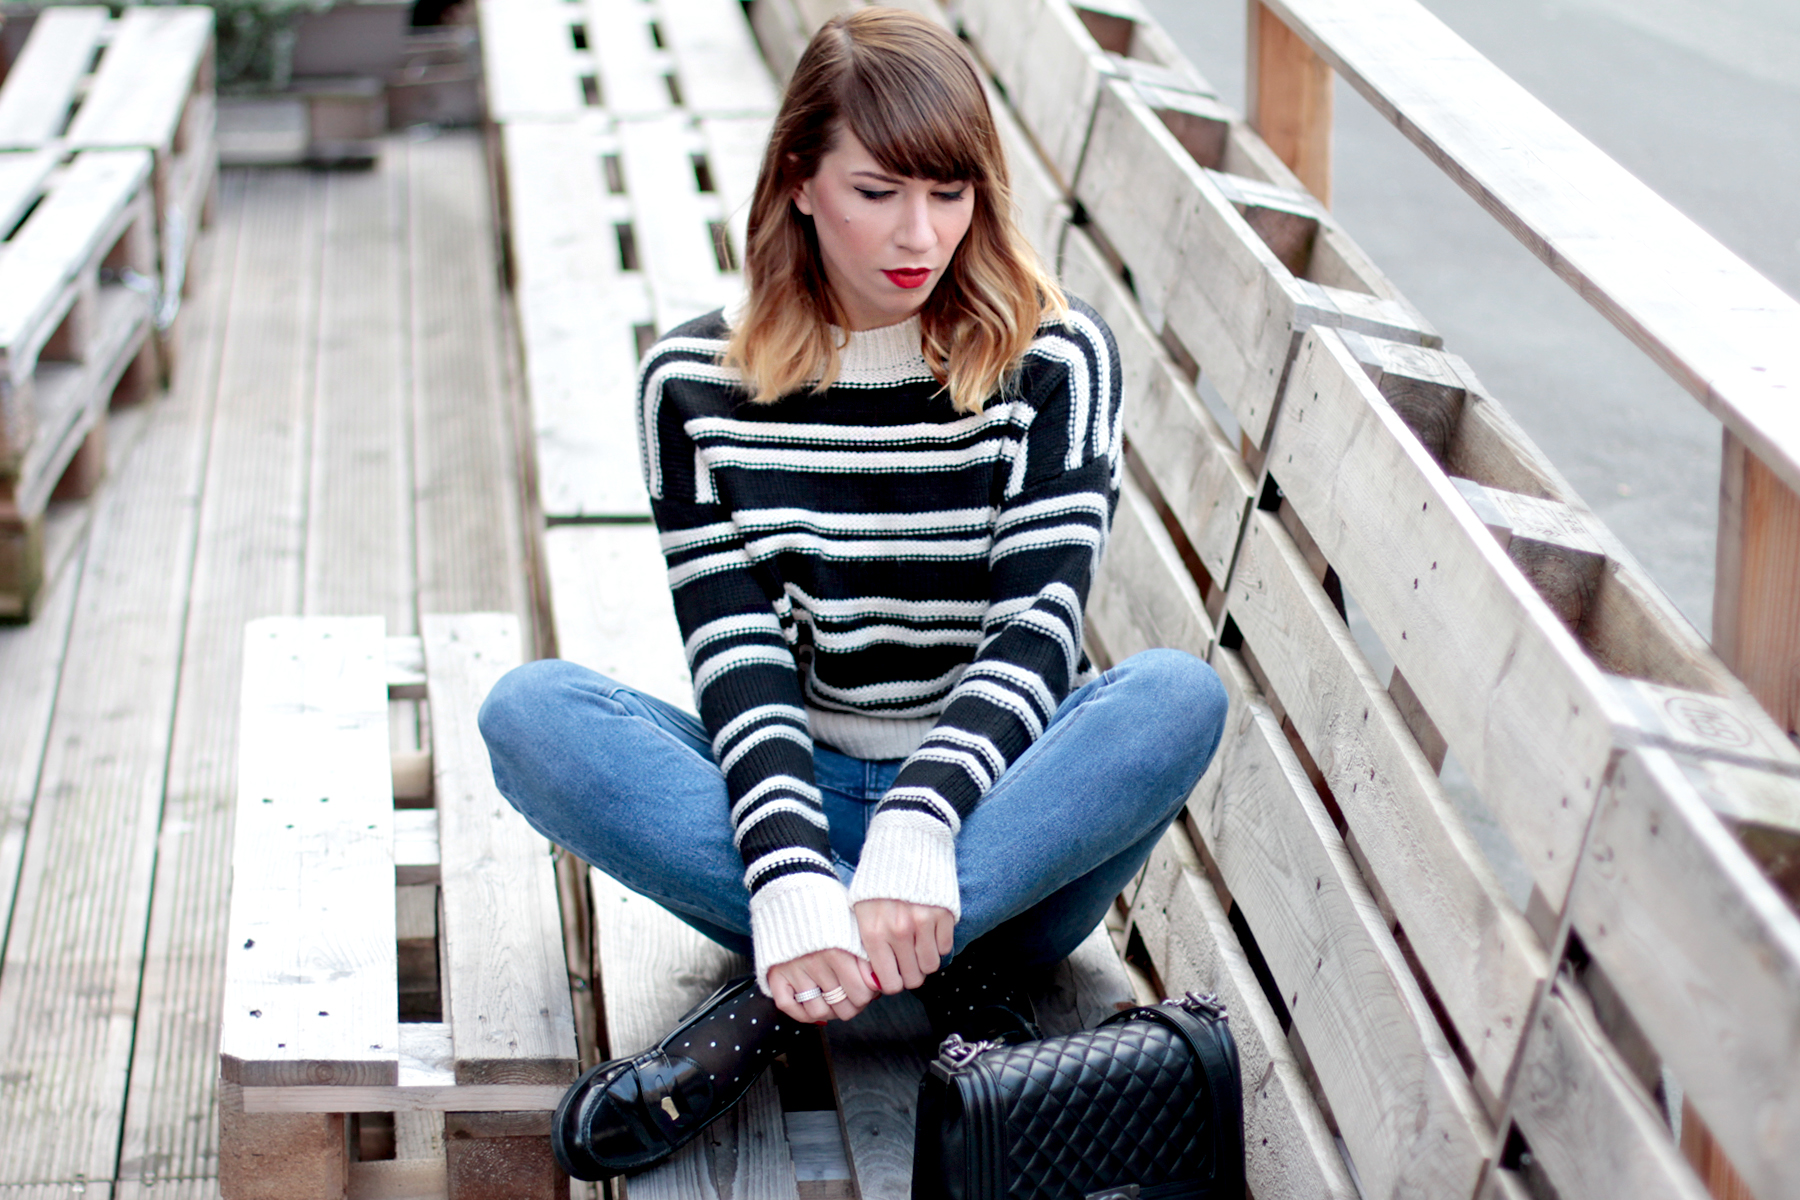 gant penny loafers h&m striped knit breton bretagne parisian style chanel le boy bag tailor swift style cute girl ricarda schernus fashionblogger cats & dogs blog1